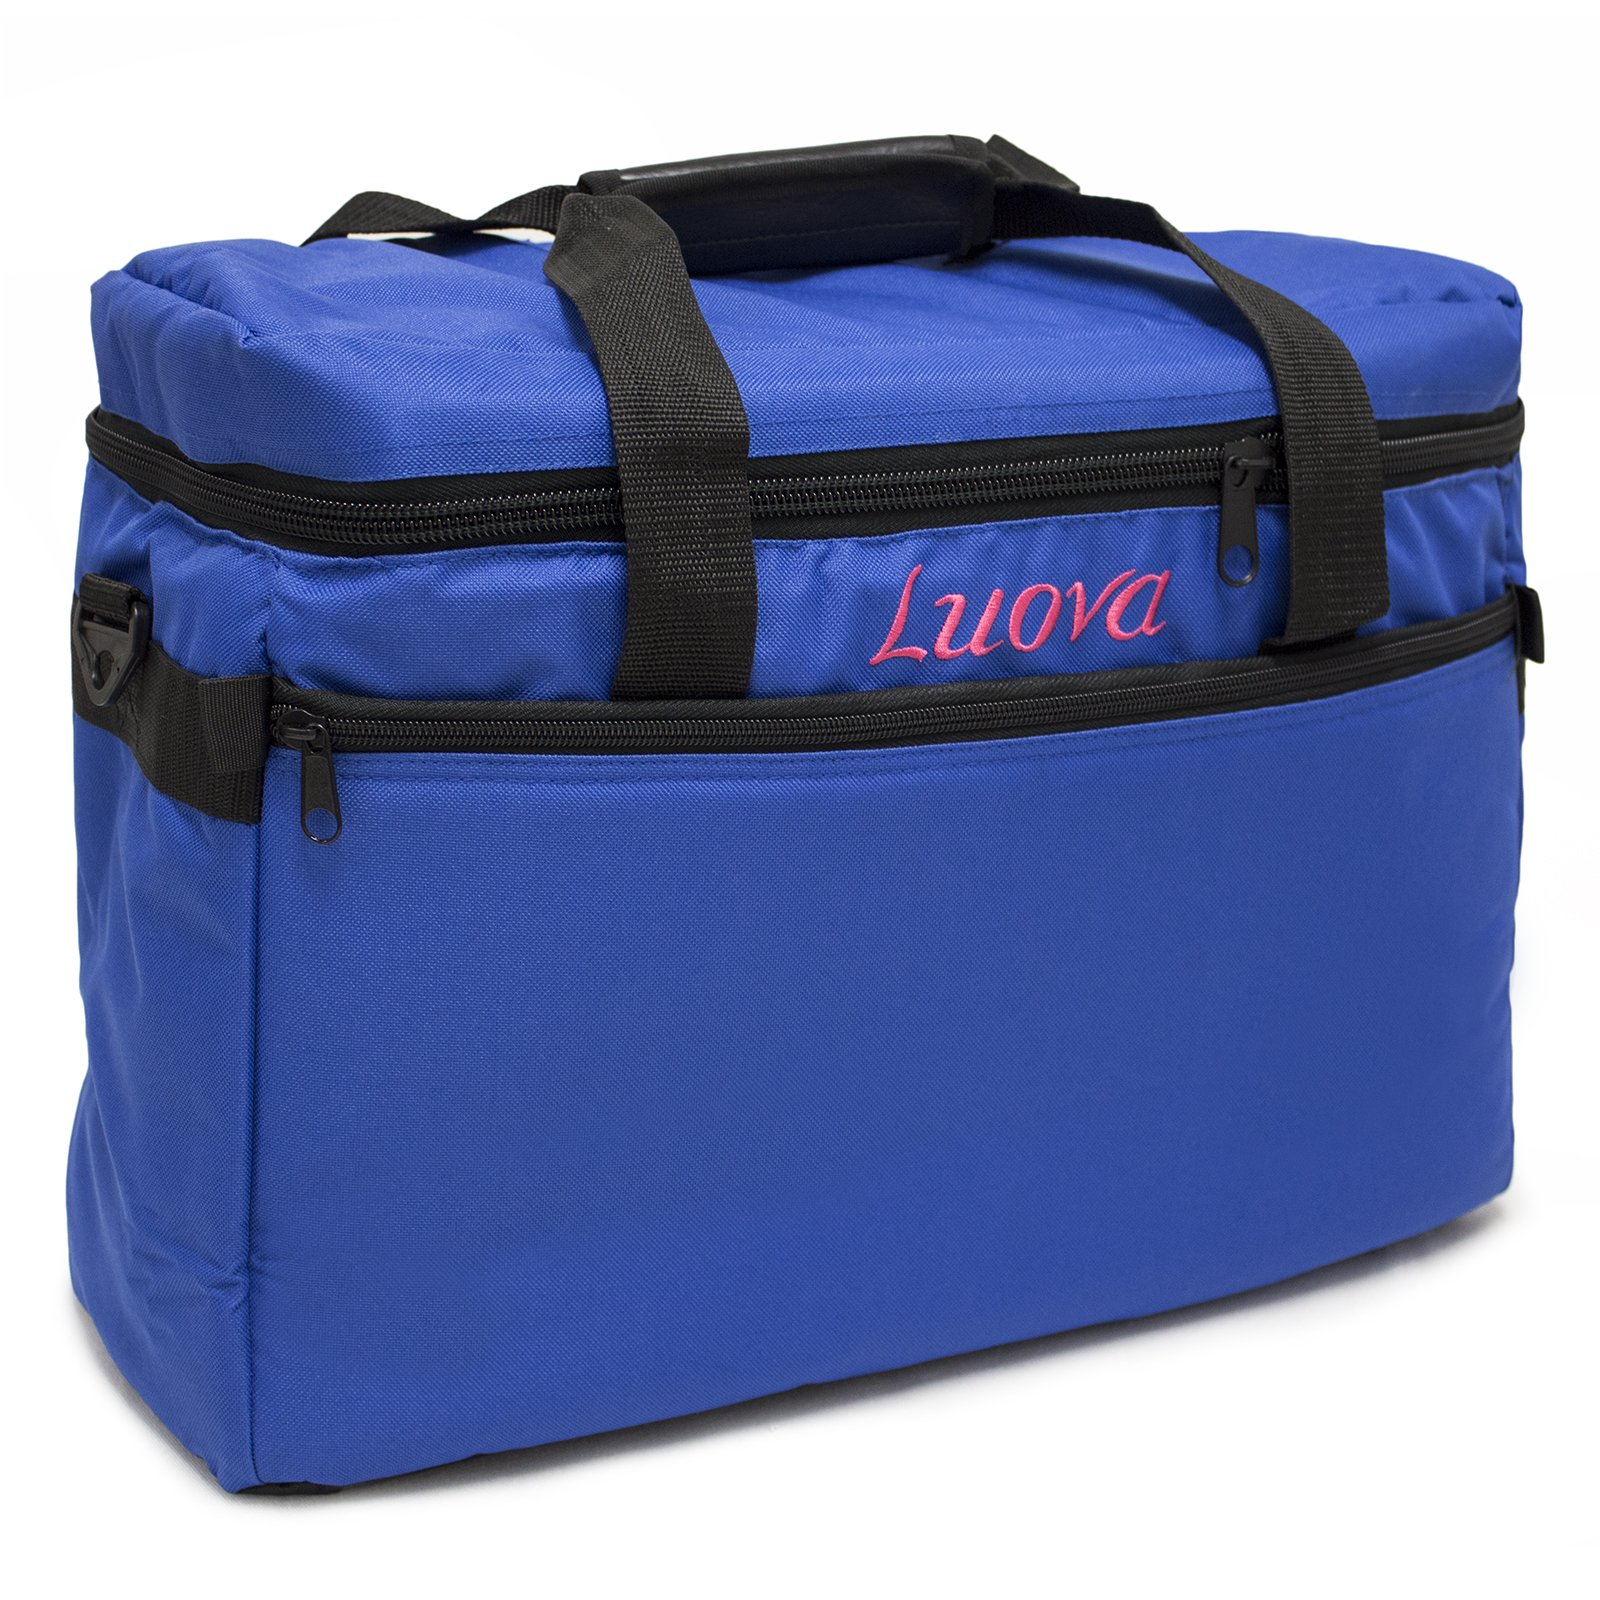 "Luova 18"" Sewing Machine Tote in Cobalt"